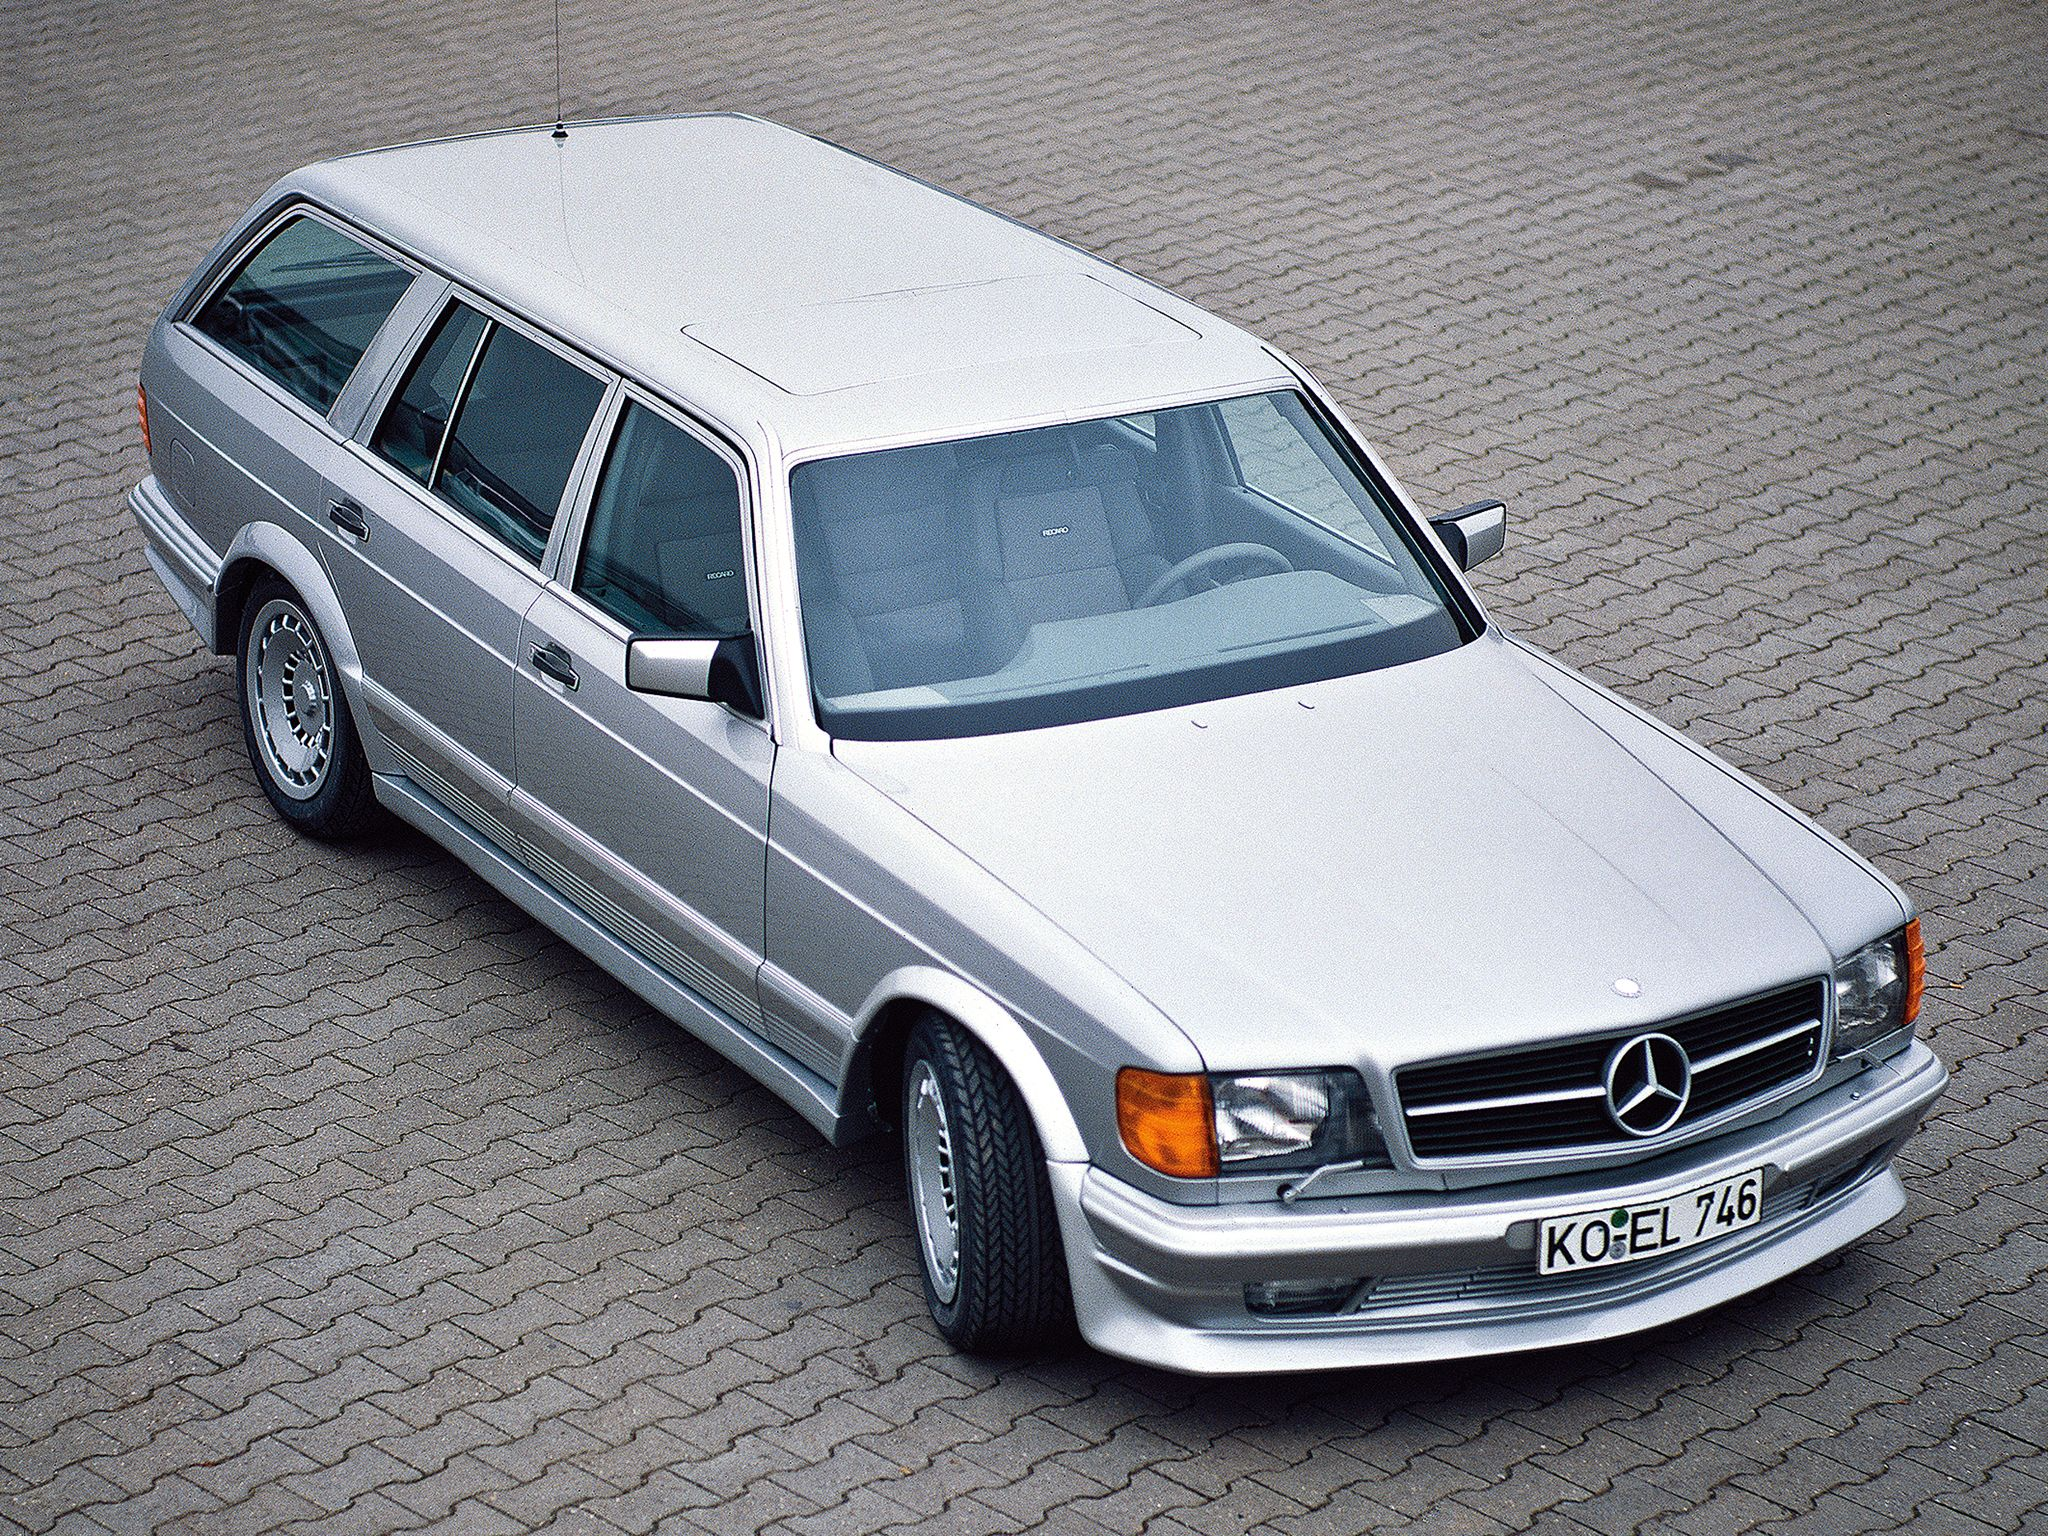 Image gallery mercedes 500 estate for Mercedes benz e500 station wagon